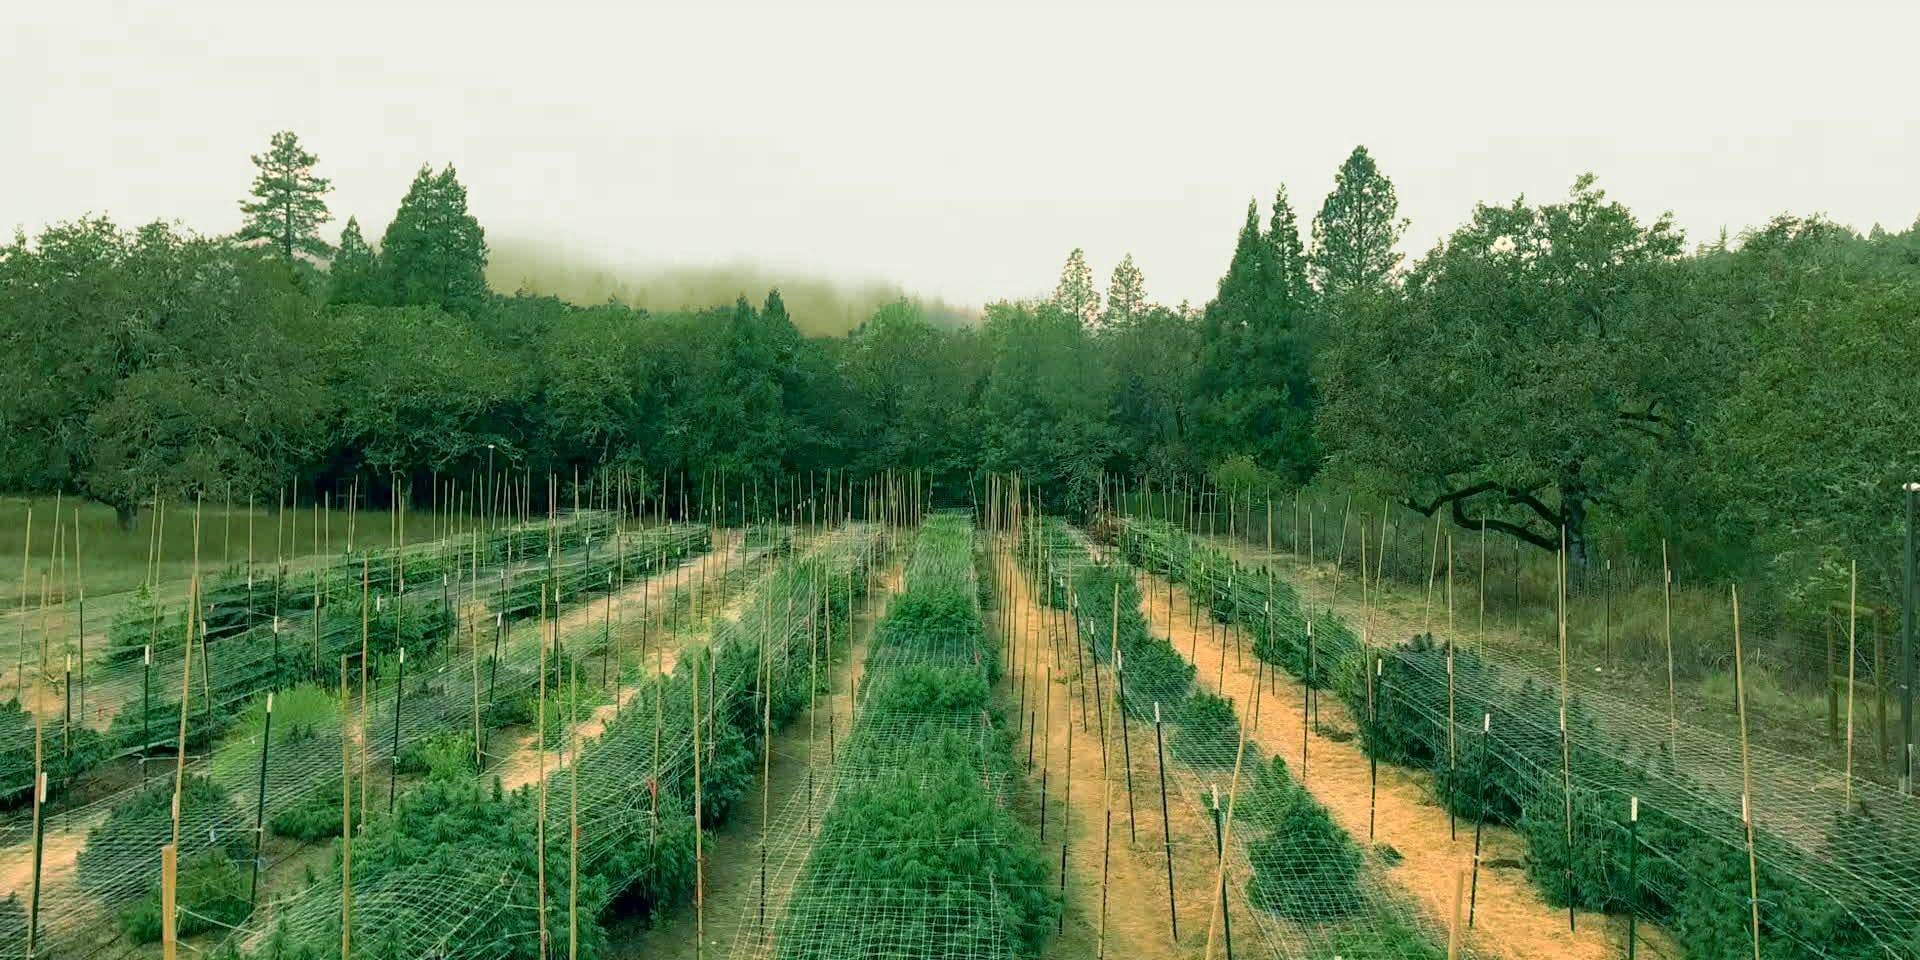 Rows of Cannabis plants growing at East Fork Cultivars in Cave Junction, Oregon.